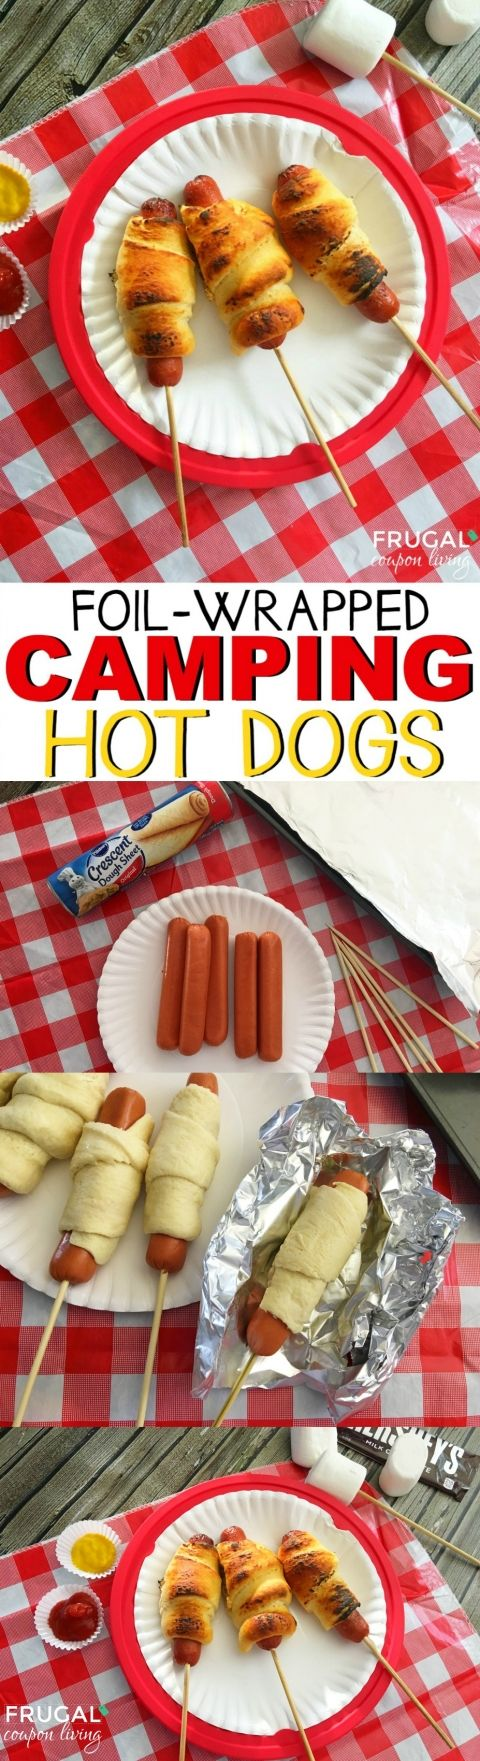 camping-hot-dogs-recipe-long-frugal-coupon-living